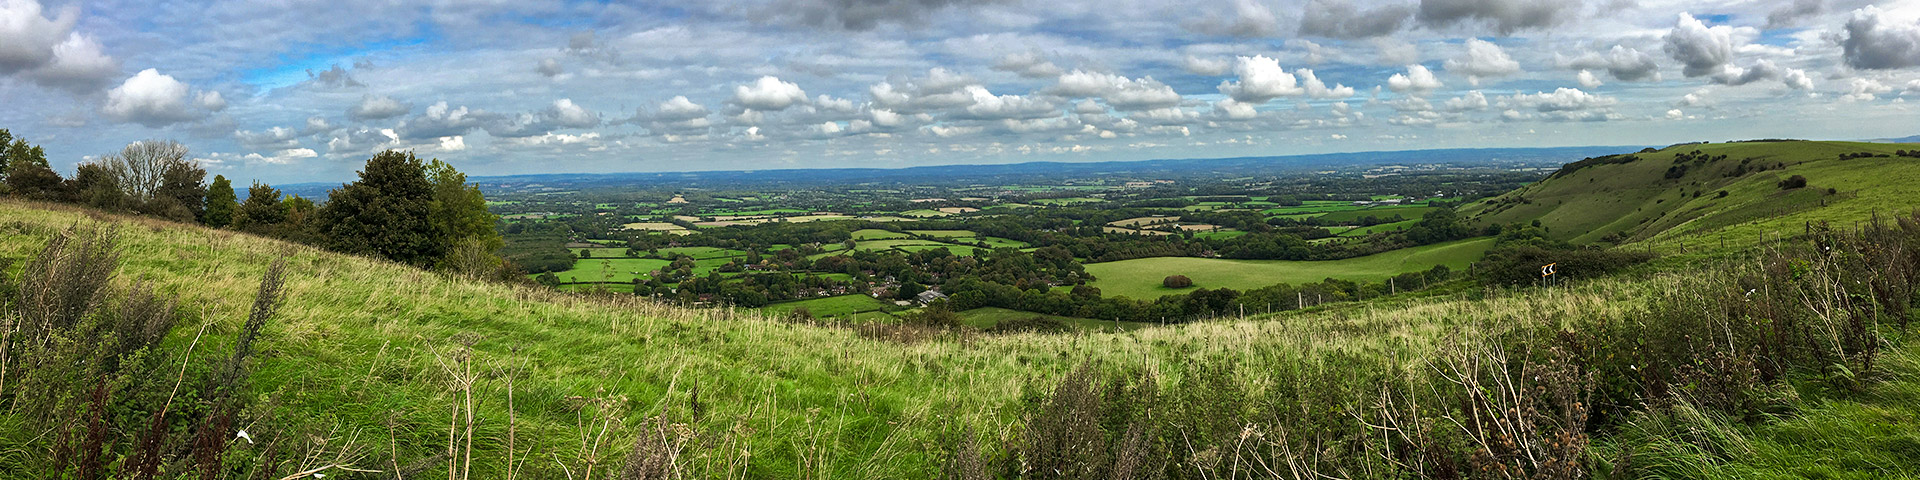 Panoramic views from the Hassocks to Lewes walk in South Downs, England